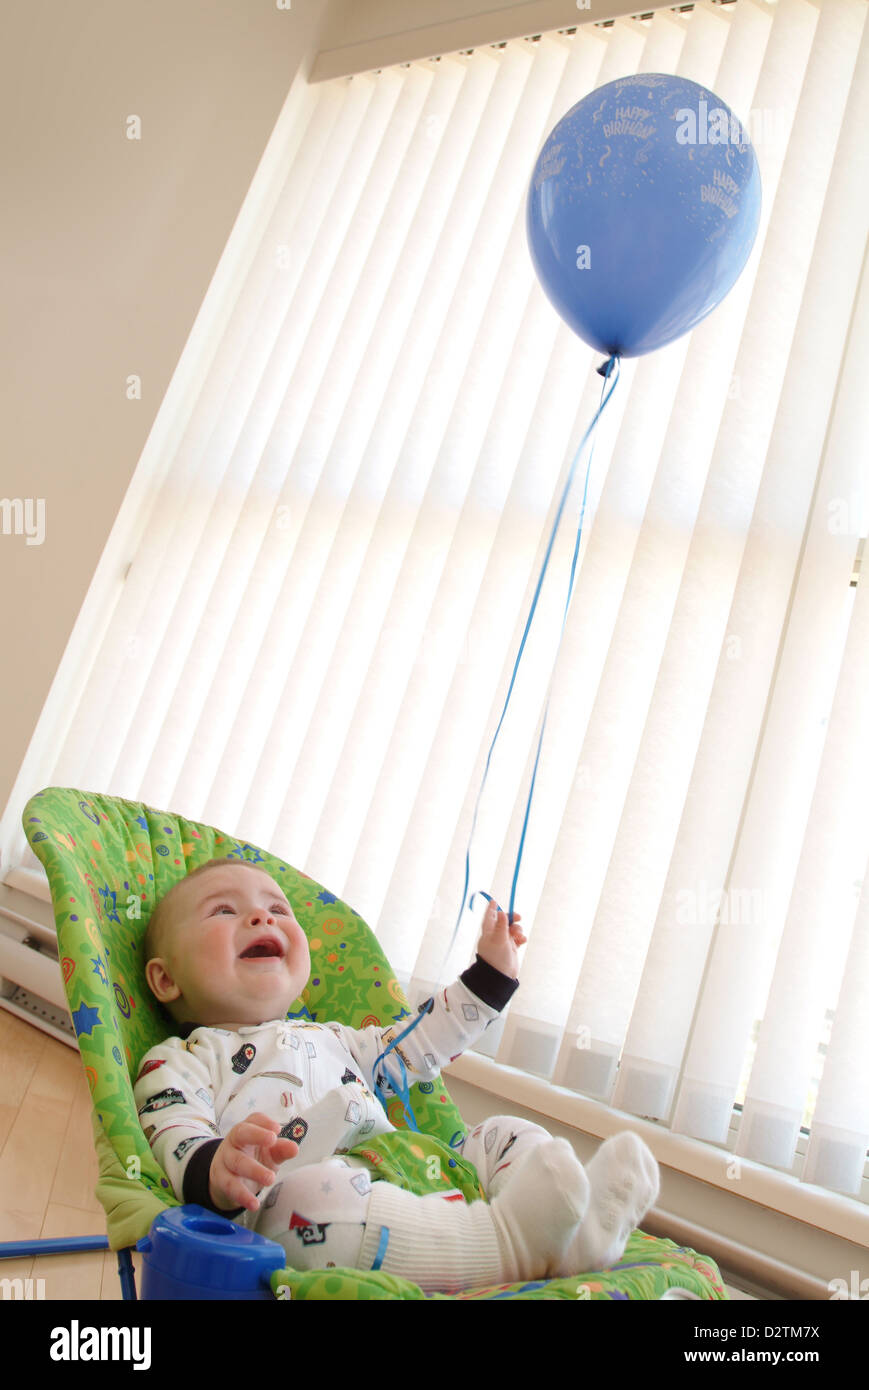 Baby with a blue baloon - Stock Image